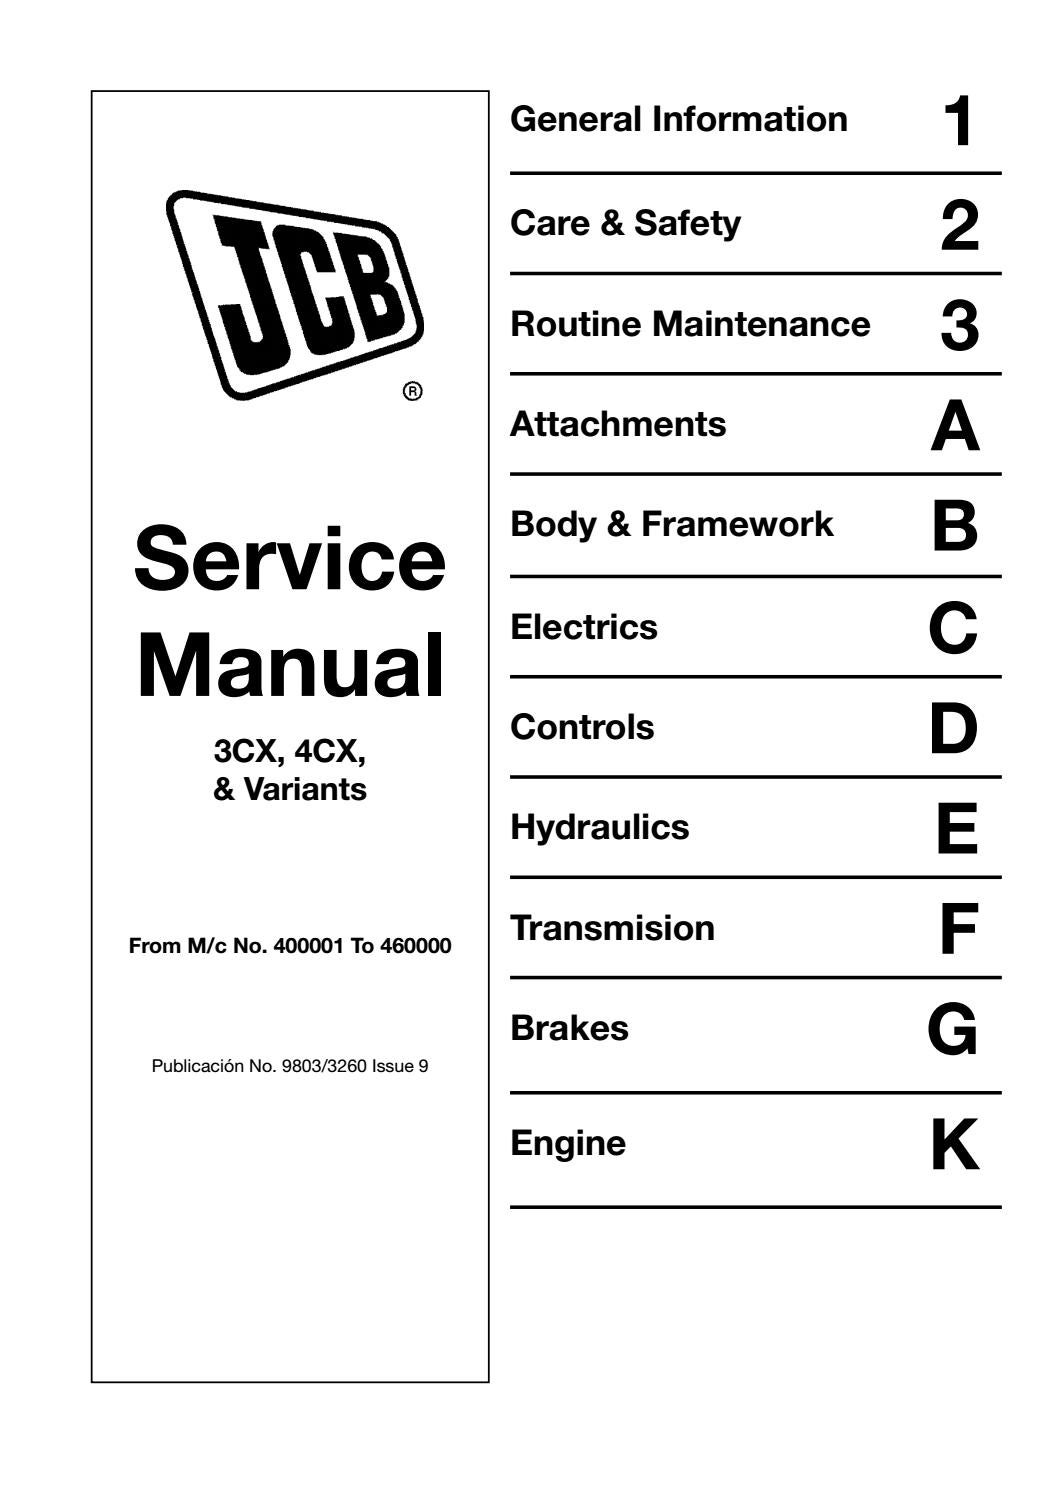 Jcb 3cx backhoe loader service repair manual (sn400001 to